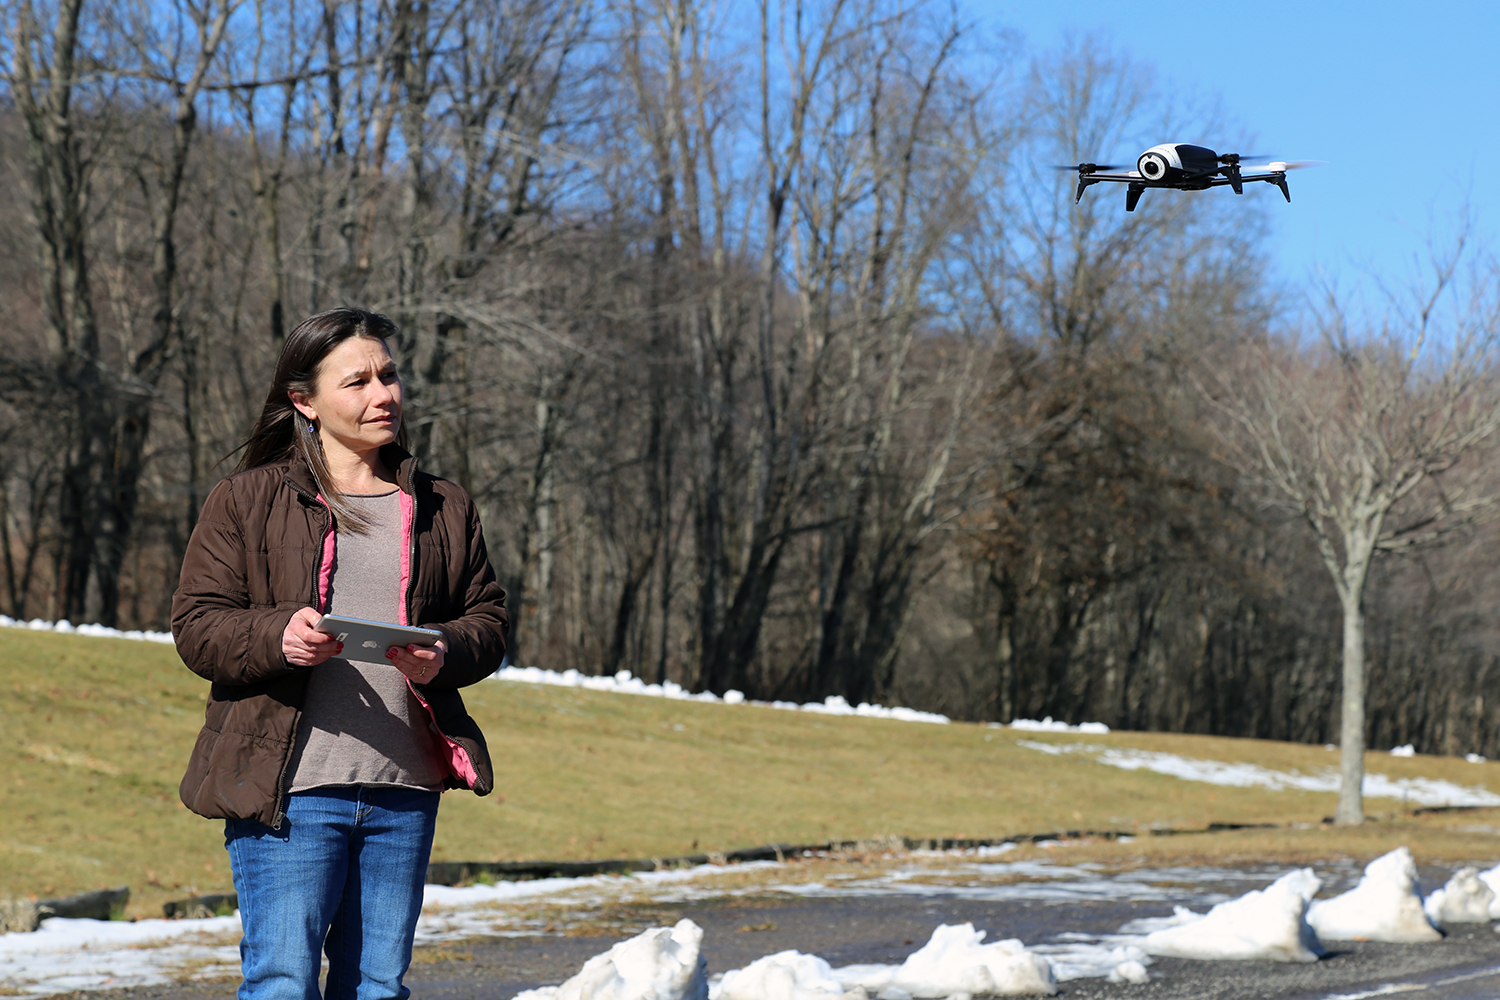 Kendall Early, of Wexford, keeps her Parrot BeBop 2 hovering just above eye level at Bush Creek Park in Beaver County. (Photo by Elizabeth Lepro/PublicSource)